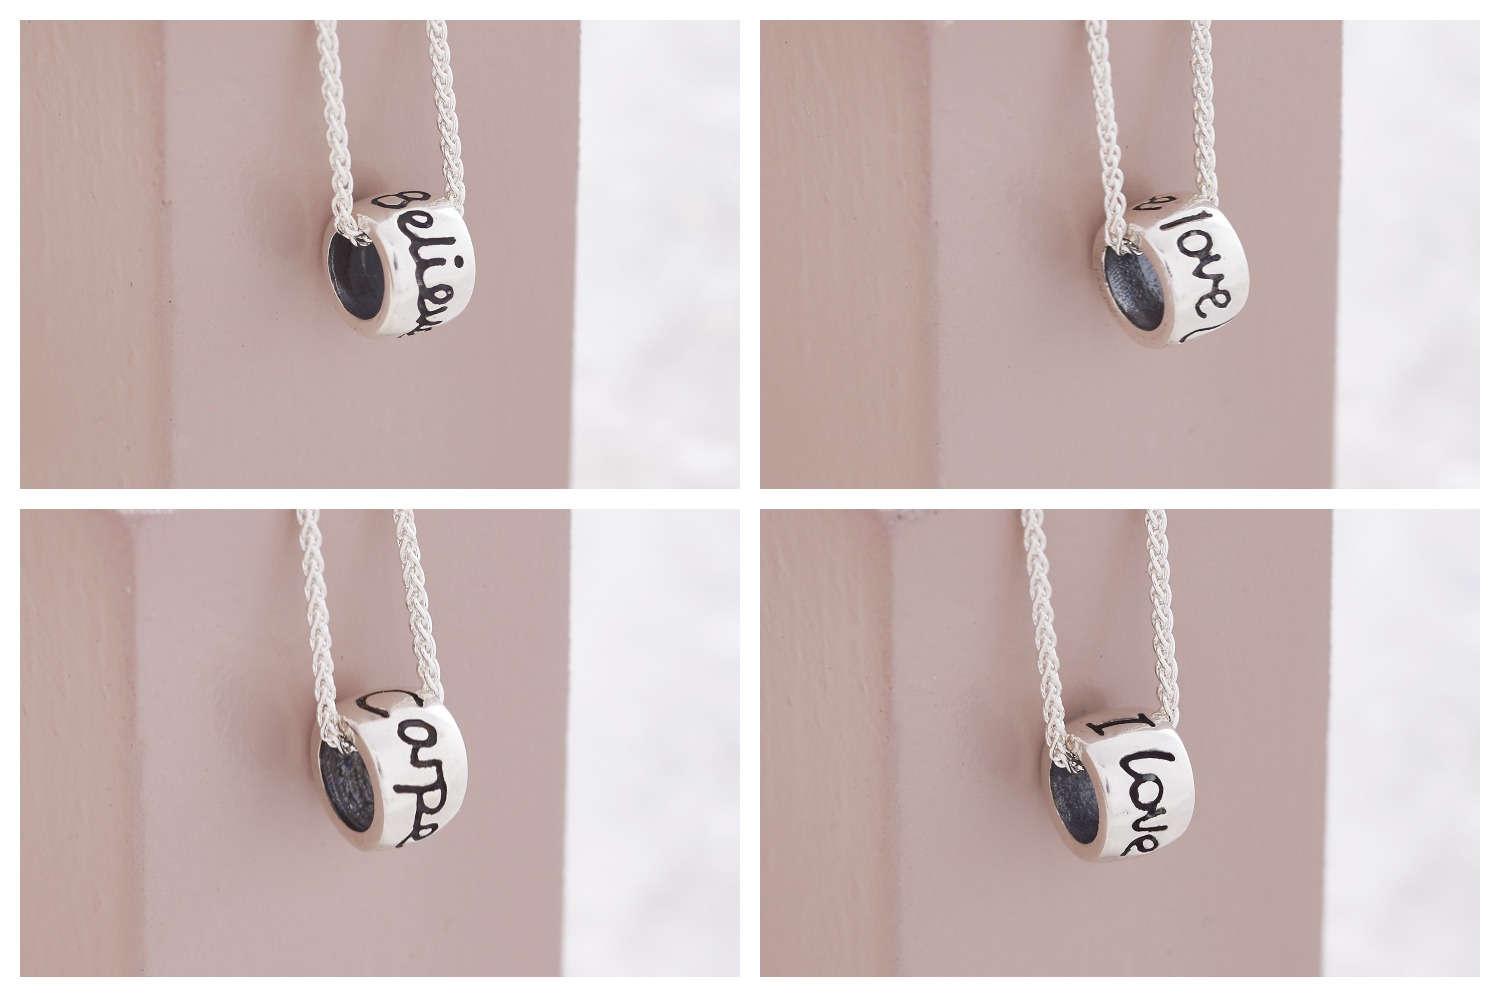 Mojo Necklace Giveaway Options